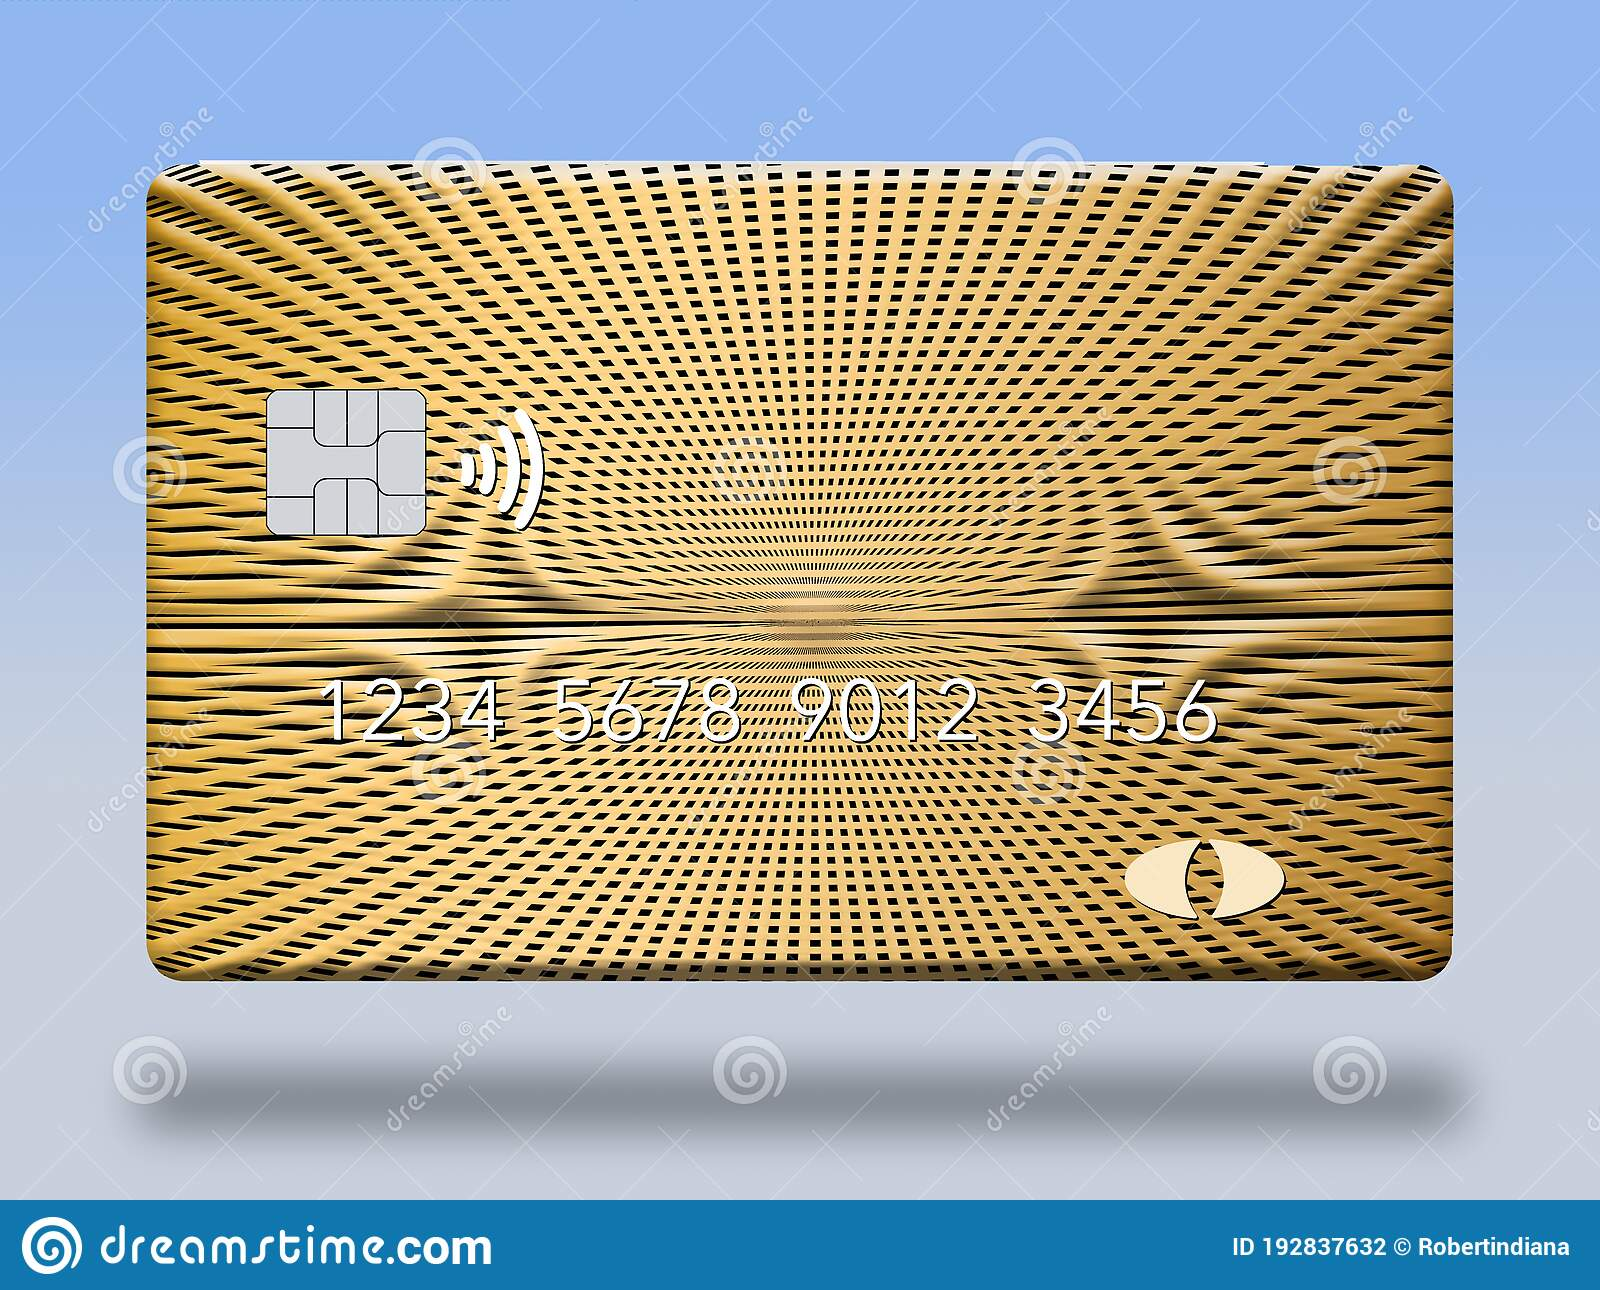 here is a blank credit or debit card with room for your